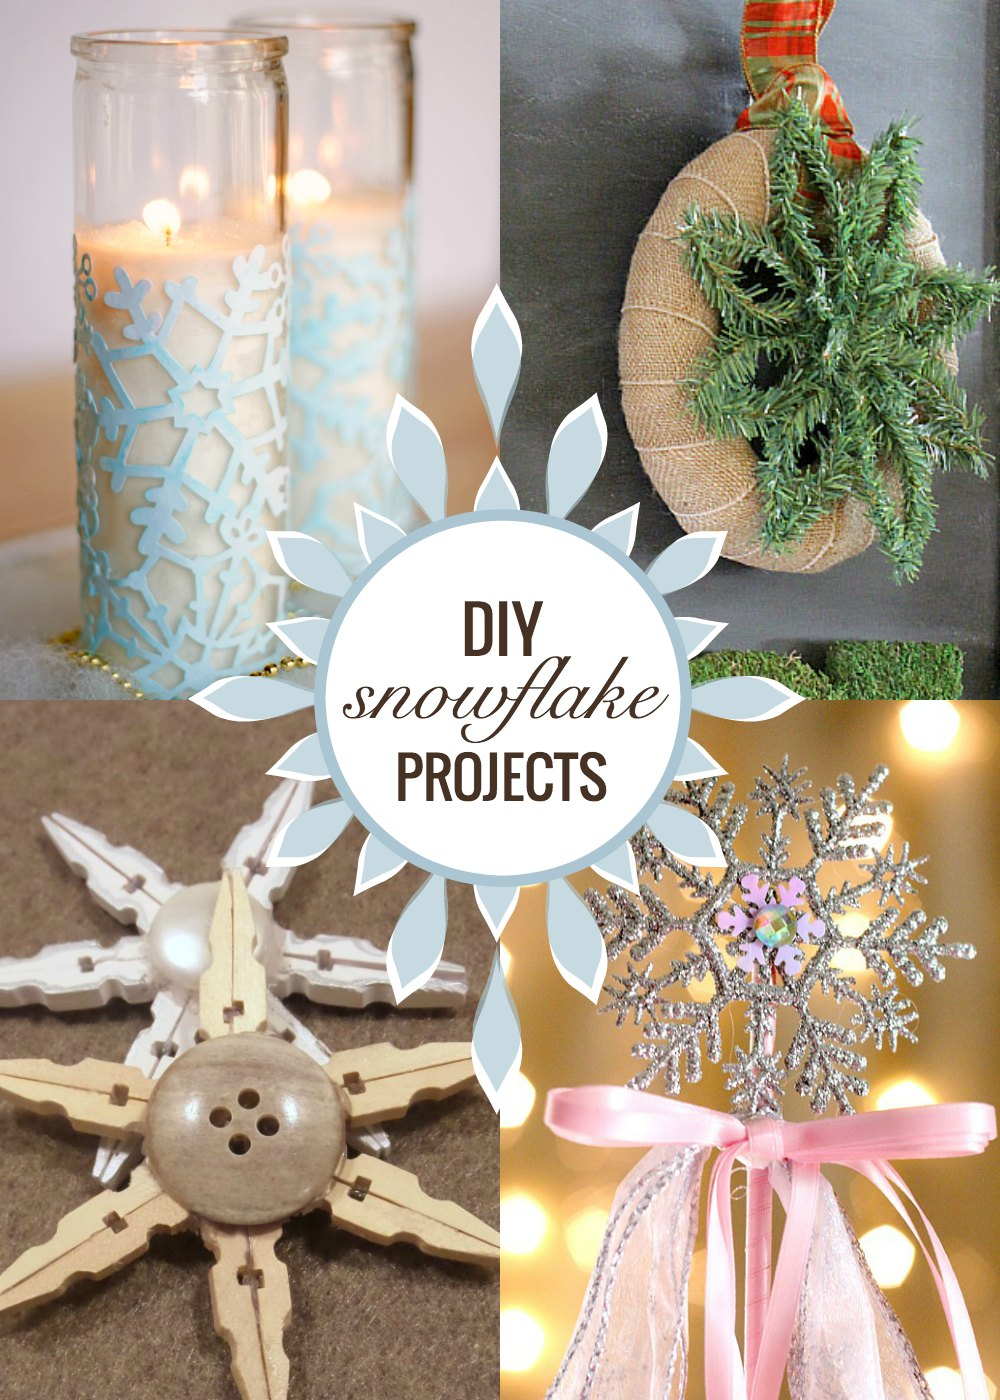 DIY snowflake projects as seen on jennsRAQ.com